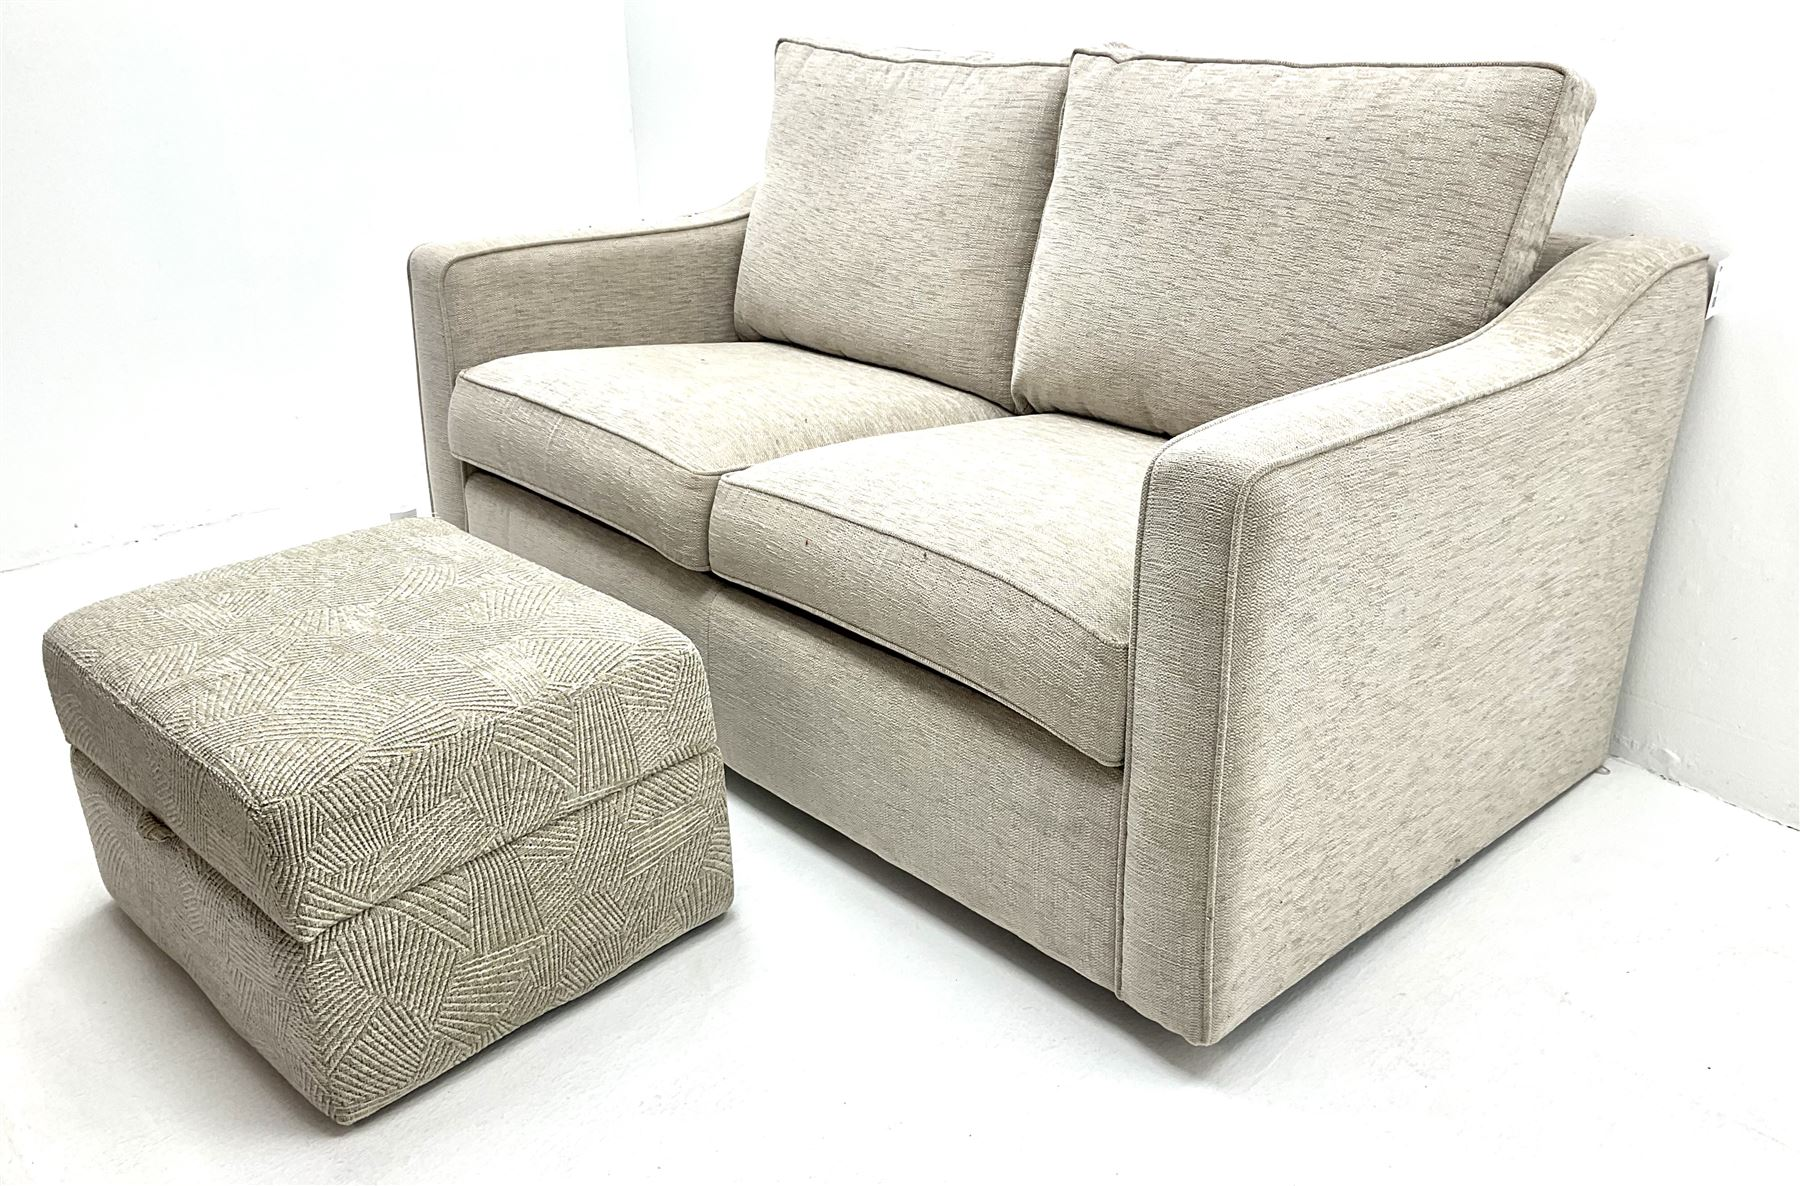 Two seat metal action sofa bed upholstered in a neutral fabric (W157cm) with storage stool (2) - Image 3 of 3